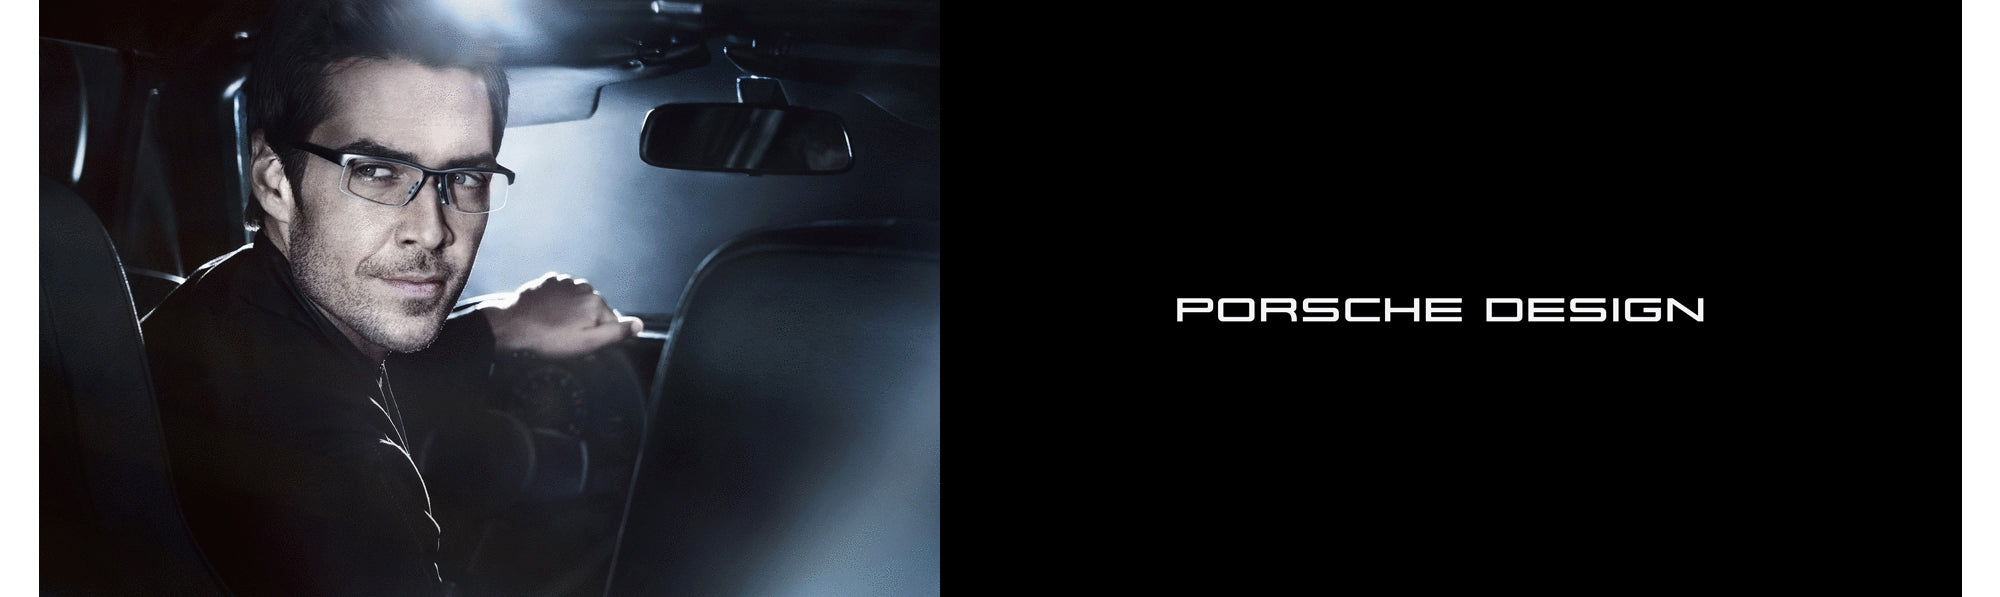 Porsche Design Optical